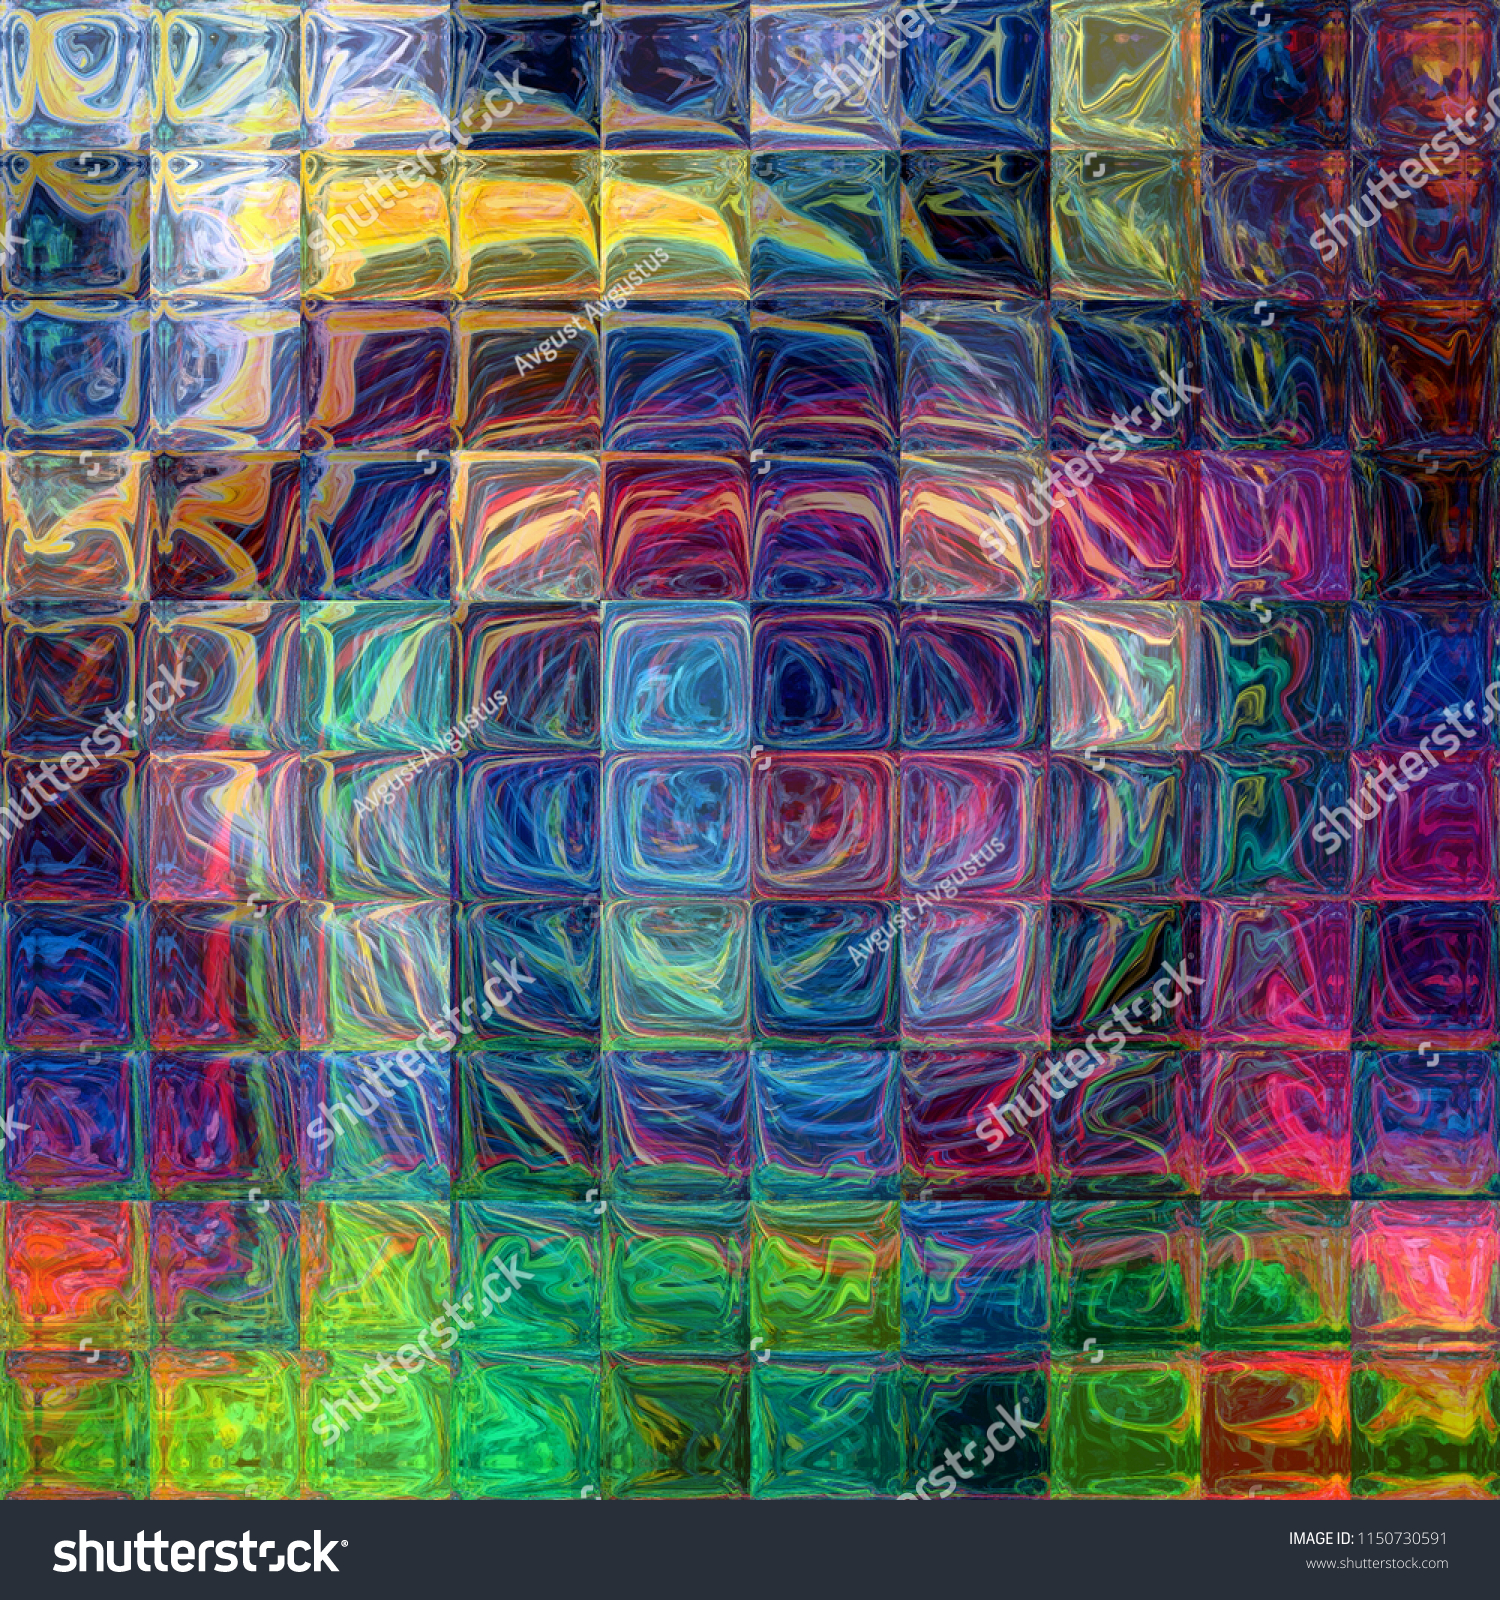 graphic painting fractal art abstract design stock illustration